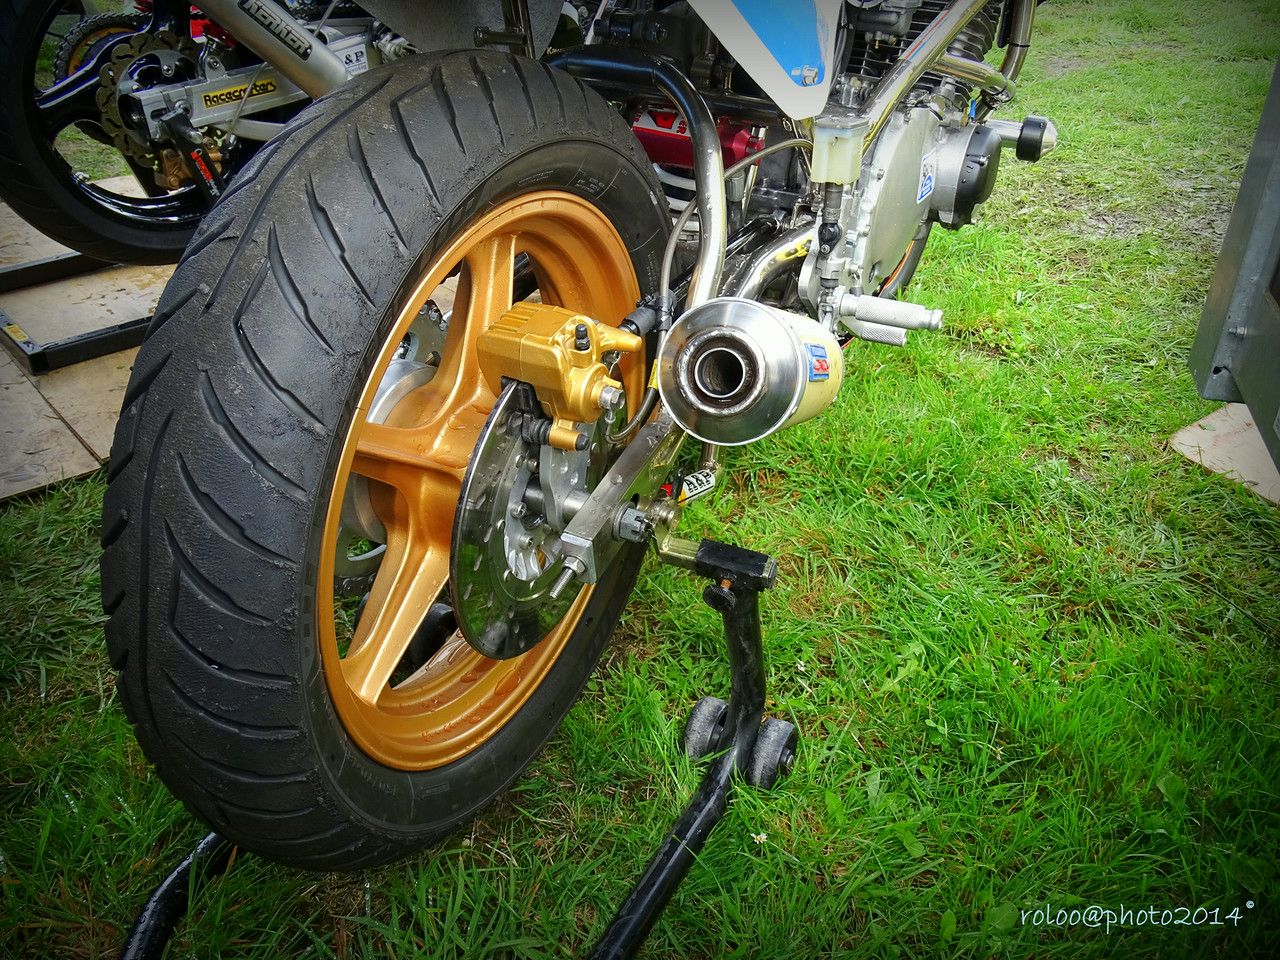 OT : Dutch Classic Superbike Meeting - 2014 - Page 2 - Pelican Parts Technical BBS